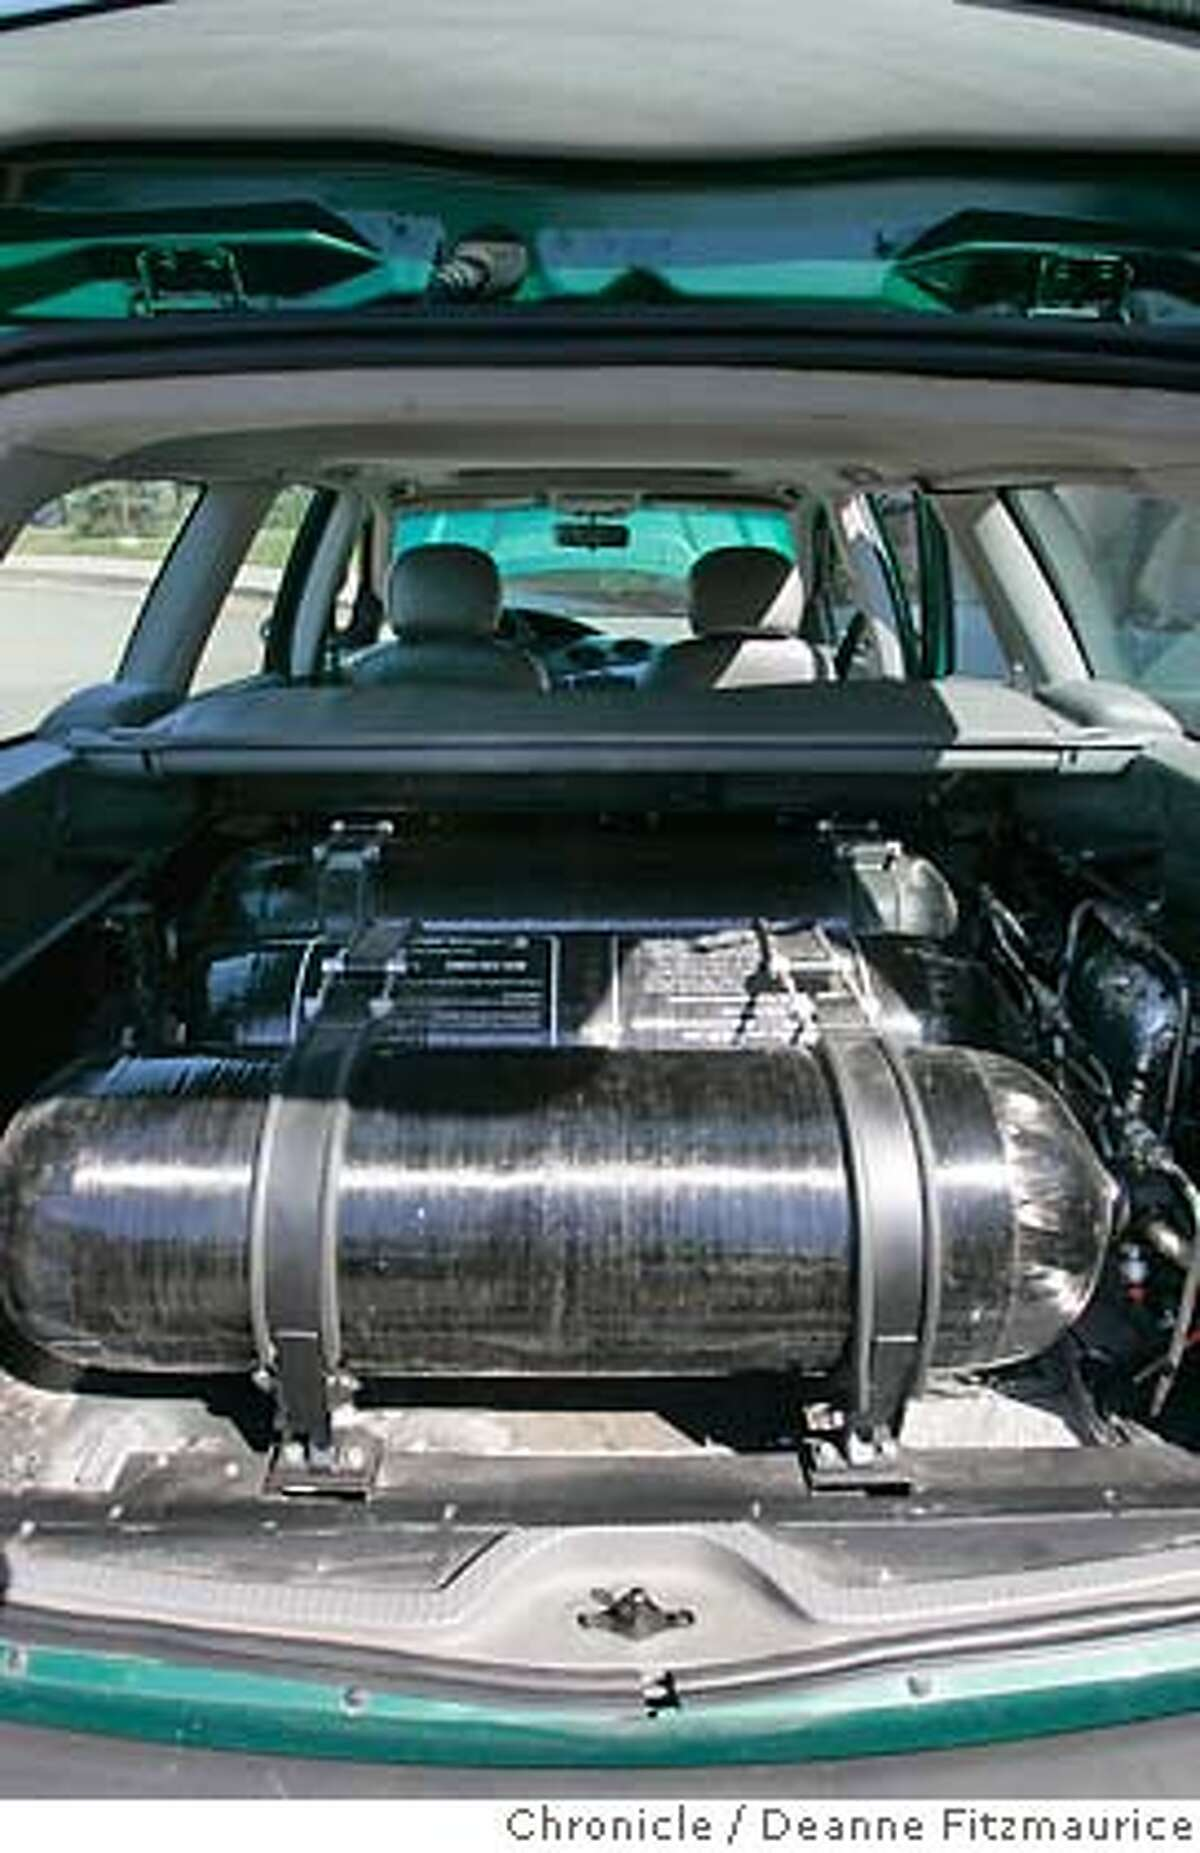 energy_544_df.JPG Ford has built a test car which runs on hydrogen stores in this tank in the back of the car. Ford Motor Company is among the U.S. auto makers who are trying to improve fuel efficiency and address energy issues. Deanne Fitzmaurice / The Chronicle MANDATORY CREDIT FOR PHOTOG AND SF CHRONICLE/ -MAGS OUT Business#Business#Chronicle#10/26/2004##5star##0422386247